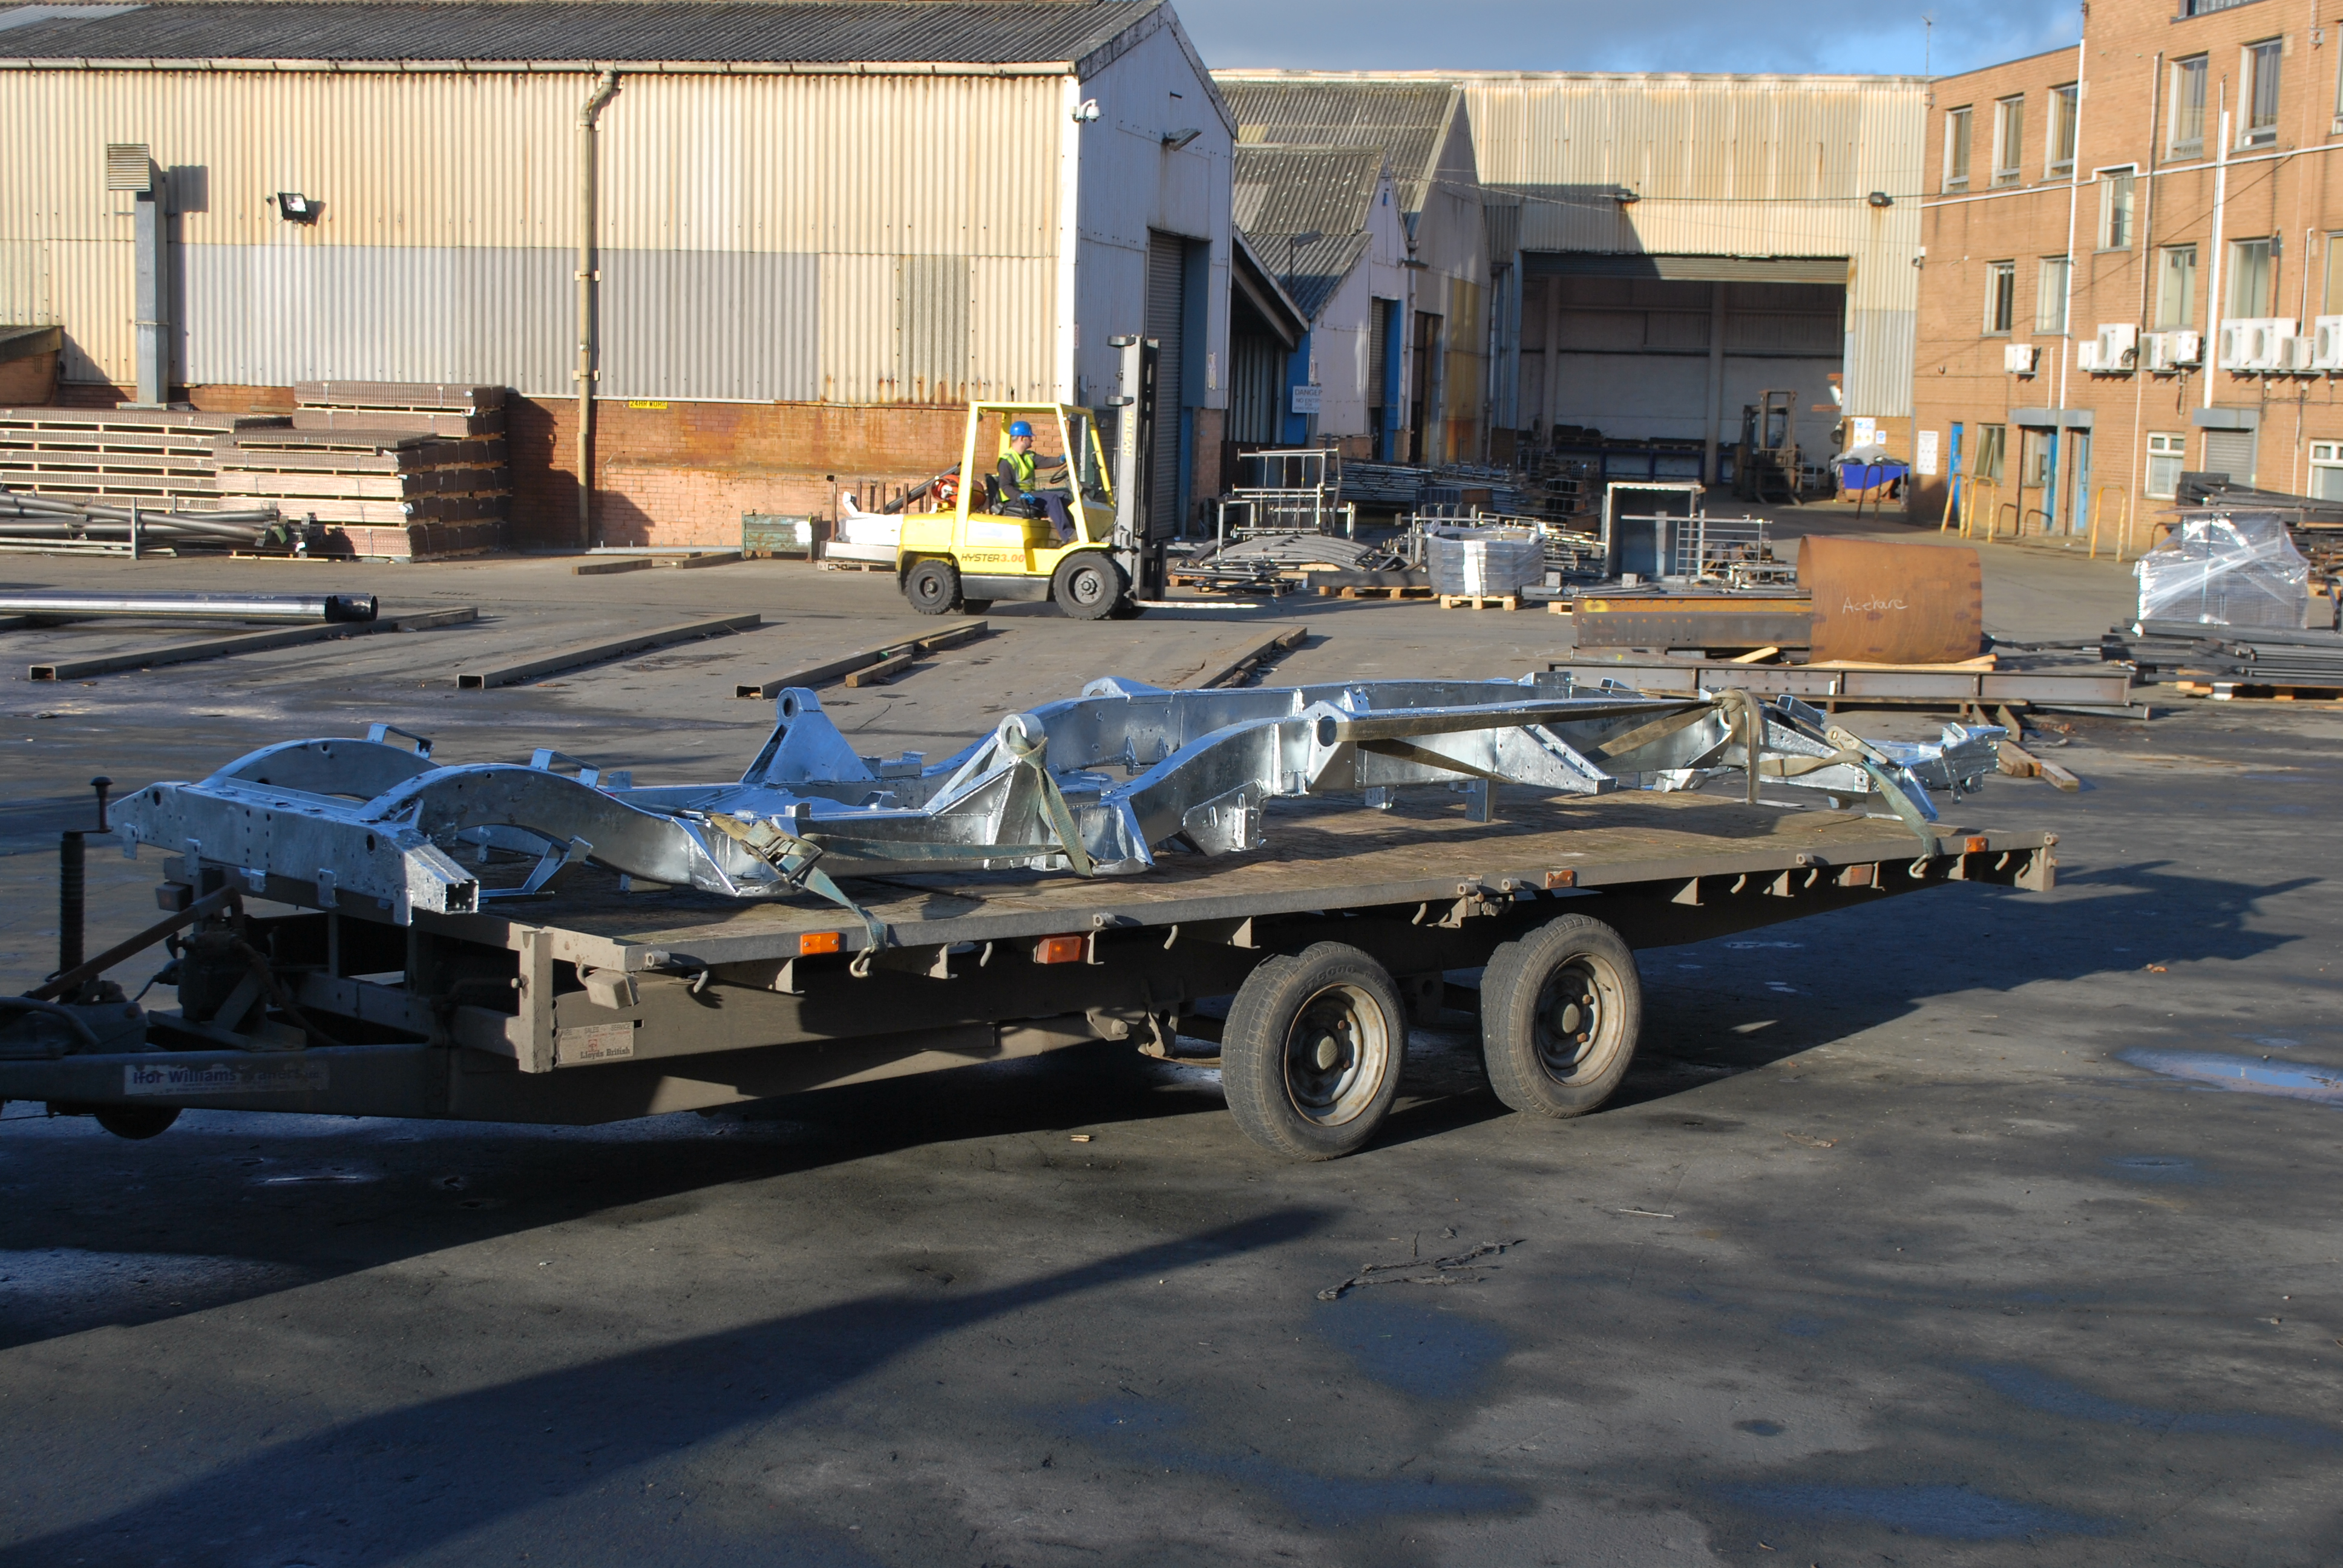 Land Rover Defender 6 6 170 Galvanized Chassis Land Rover Blogger